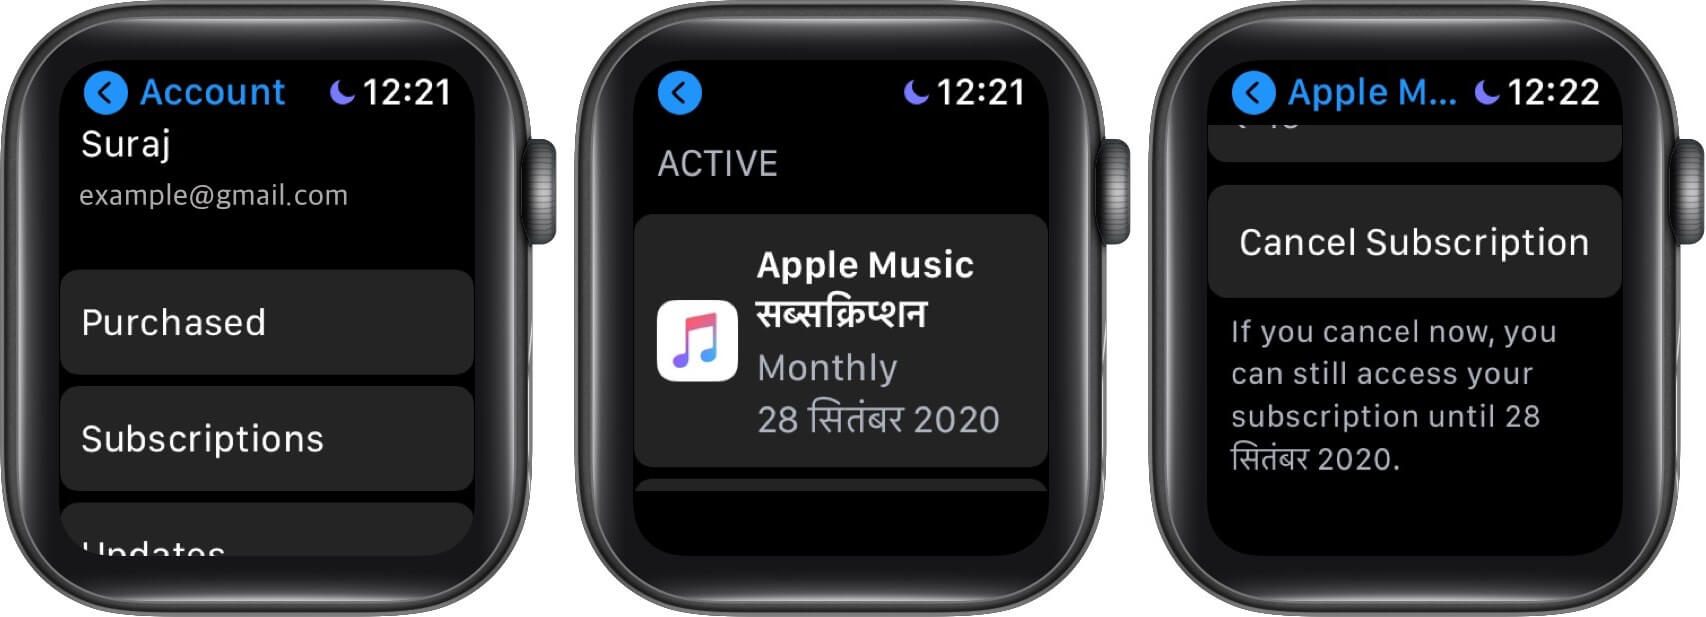 tap on subsctiption select apple music and tap on cancel subscription on apple watch